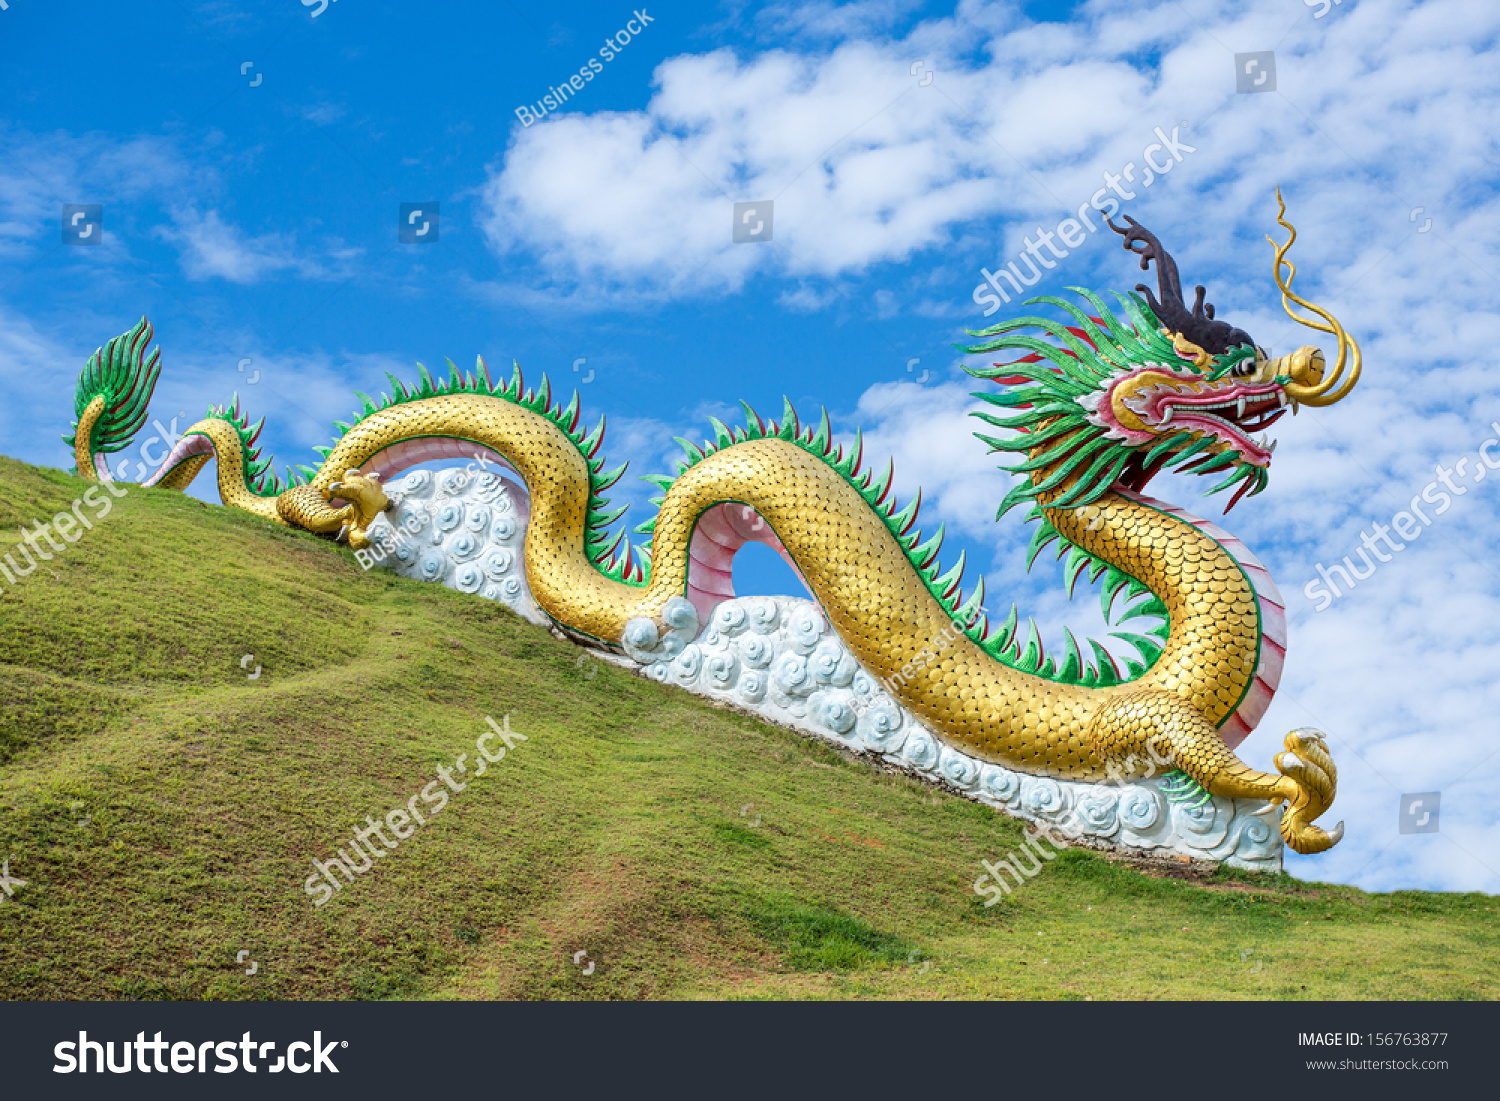 Giant Dragon Statue Giant Chinese Style Dragon Statue On Stock Photo Edit Now